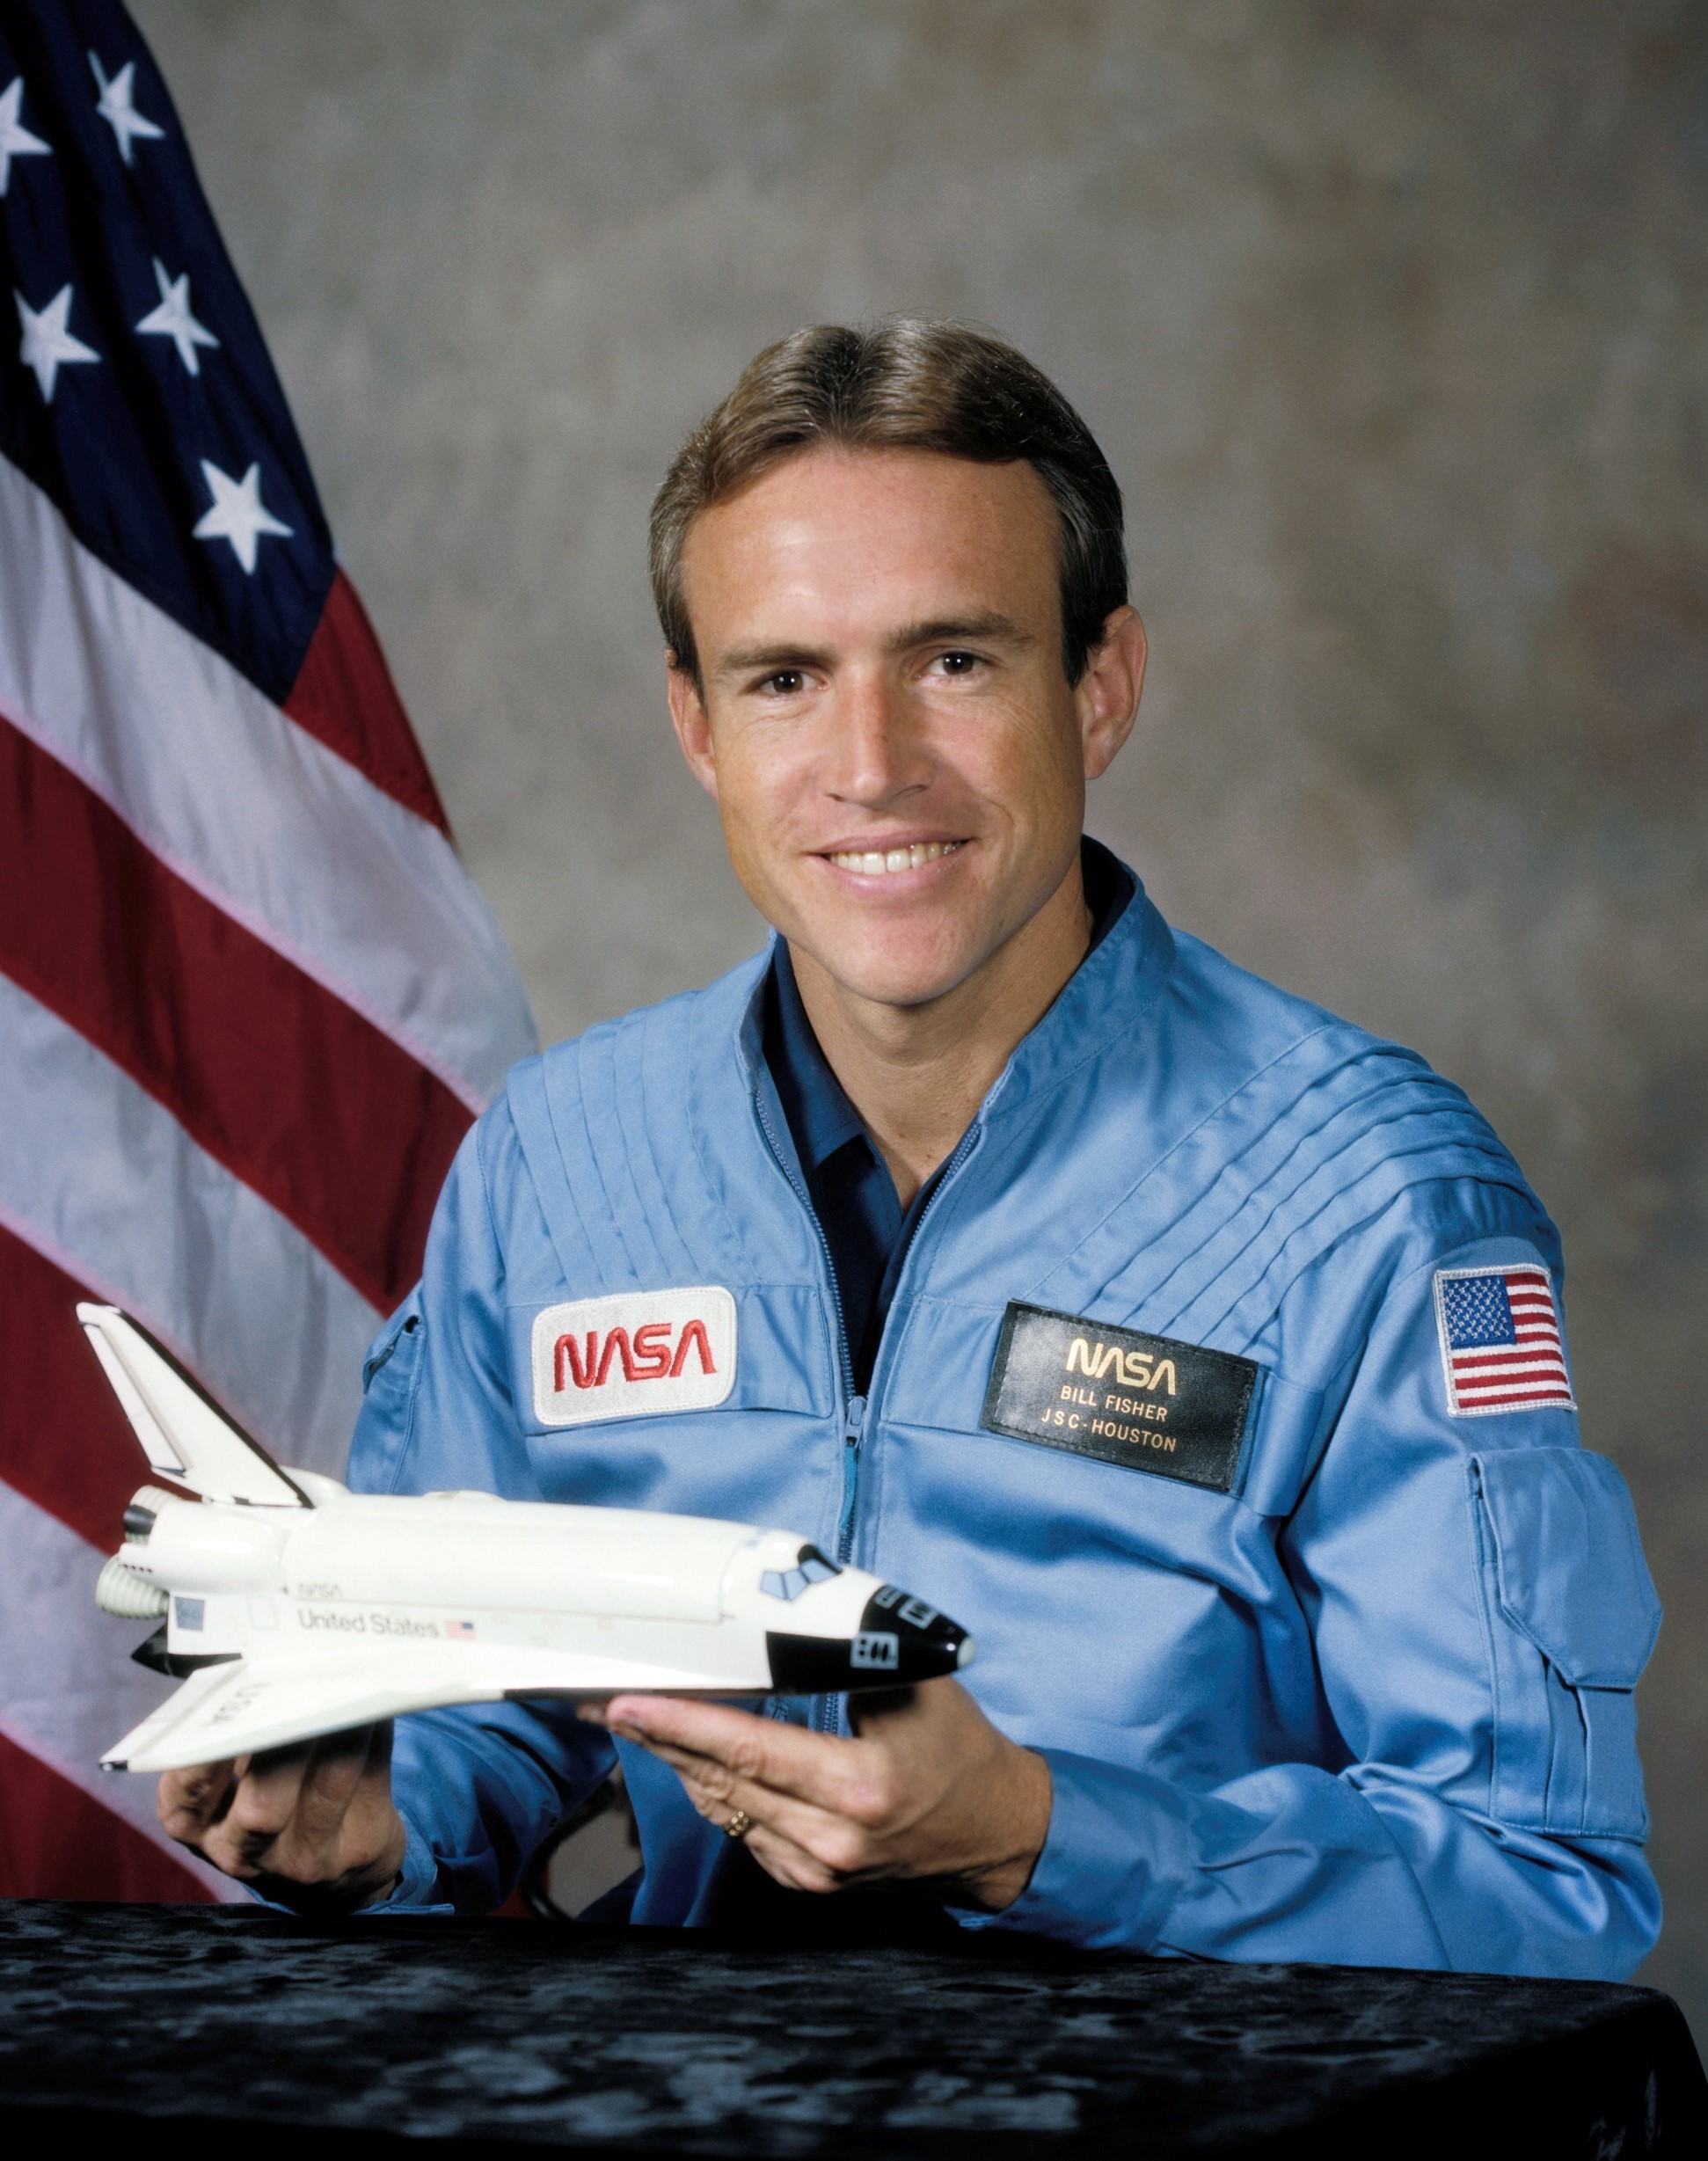 Astronaut William Fisher, NASA photo Source: Wikipedia (jsc.nasa.gov unavailable March 2019) William_Frederick_Fisher_%28Astronaut%29.jpg